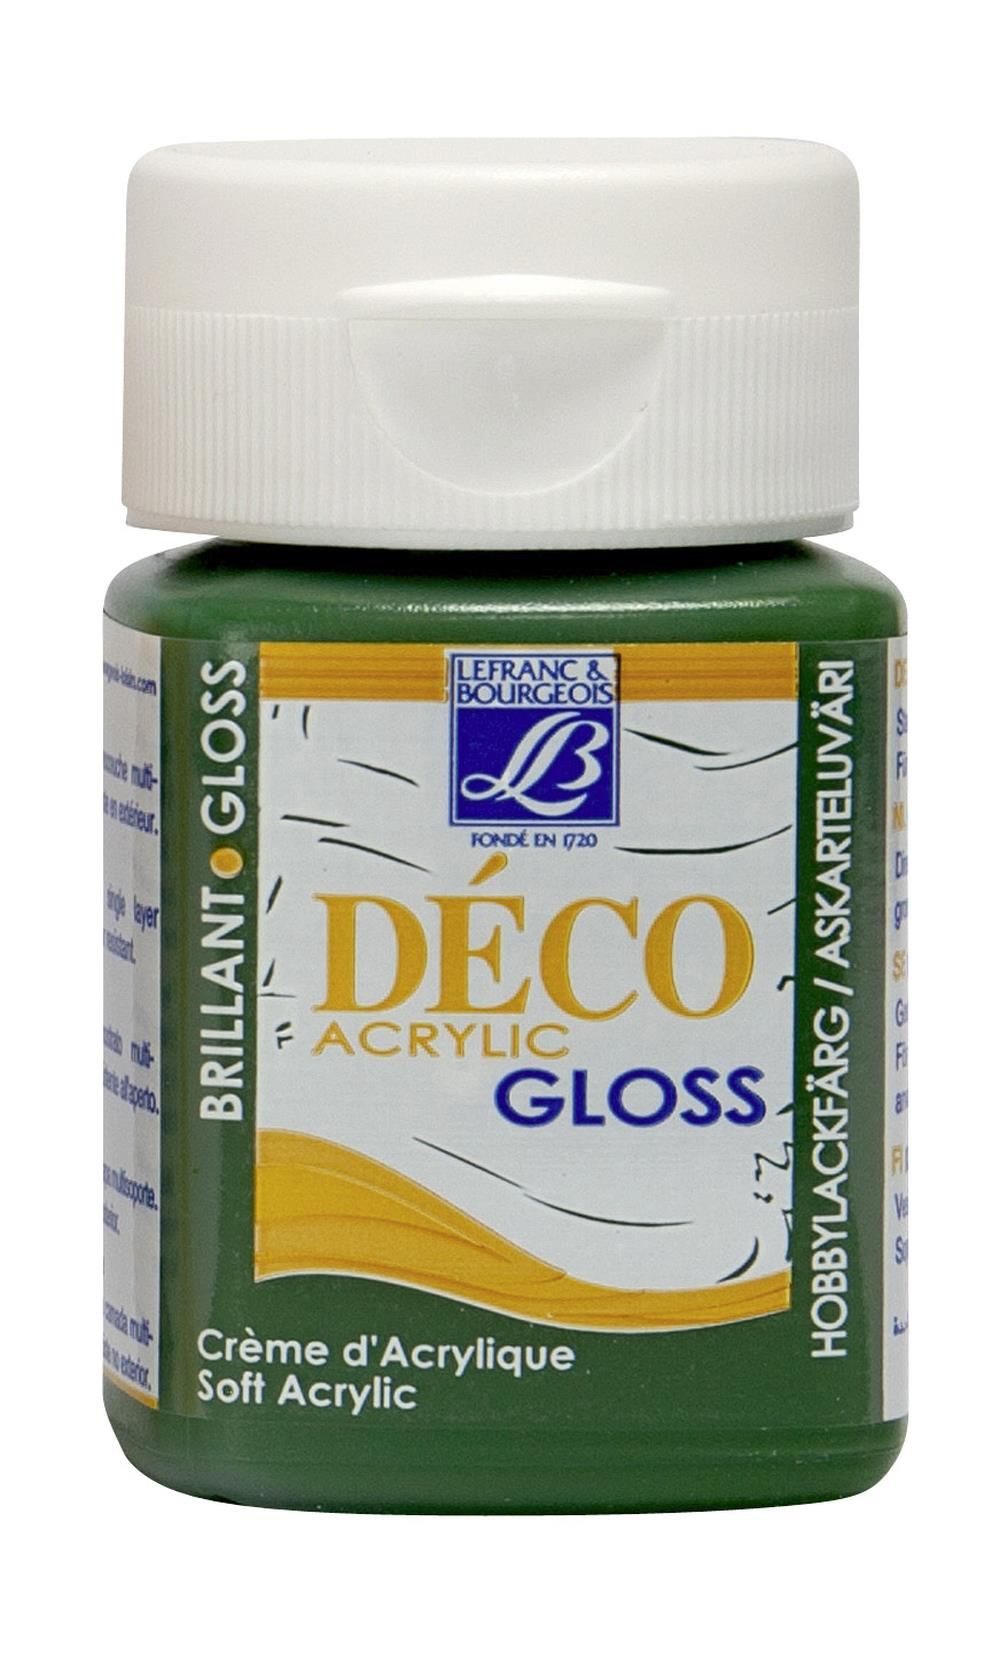 Hobbyfärg L&B Deco Gloss Akryl 50ml  Forest green 492 (4F) Utgår